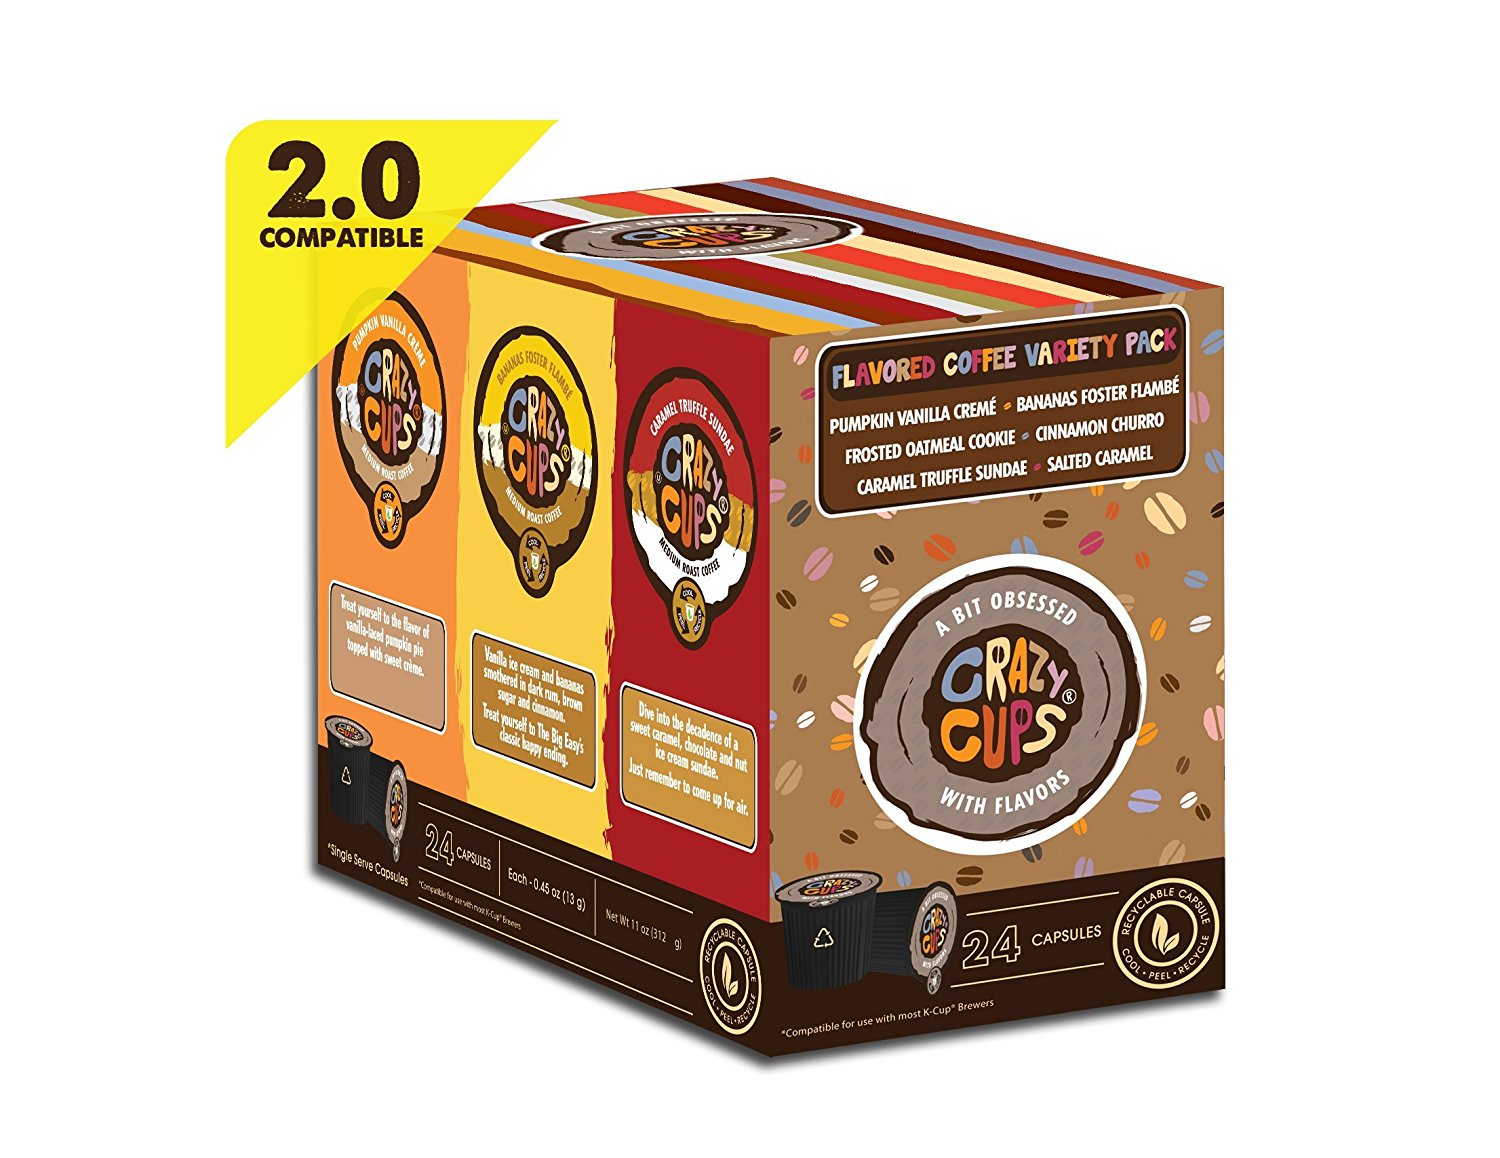 Crazy-Cups-Chocolate-Lovers-039-Flavored-Coffee-Variety-Pack-Sampler-24-ct thumbnail 9